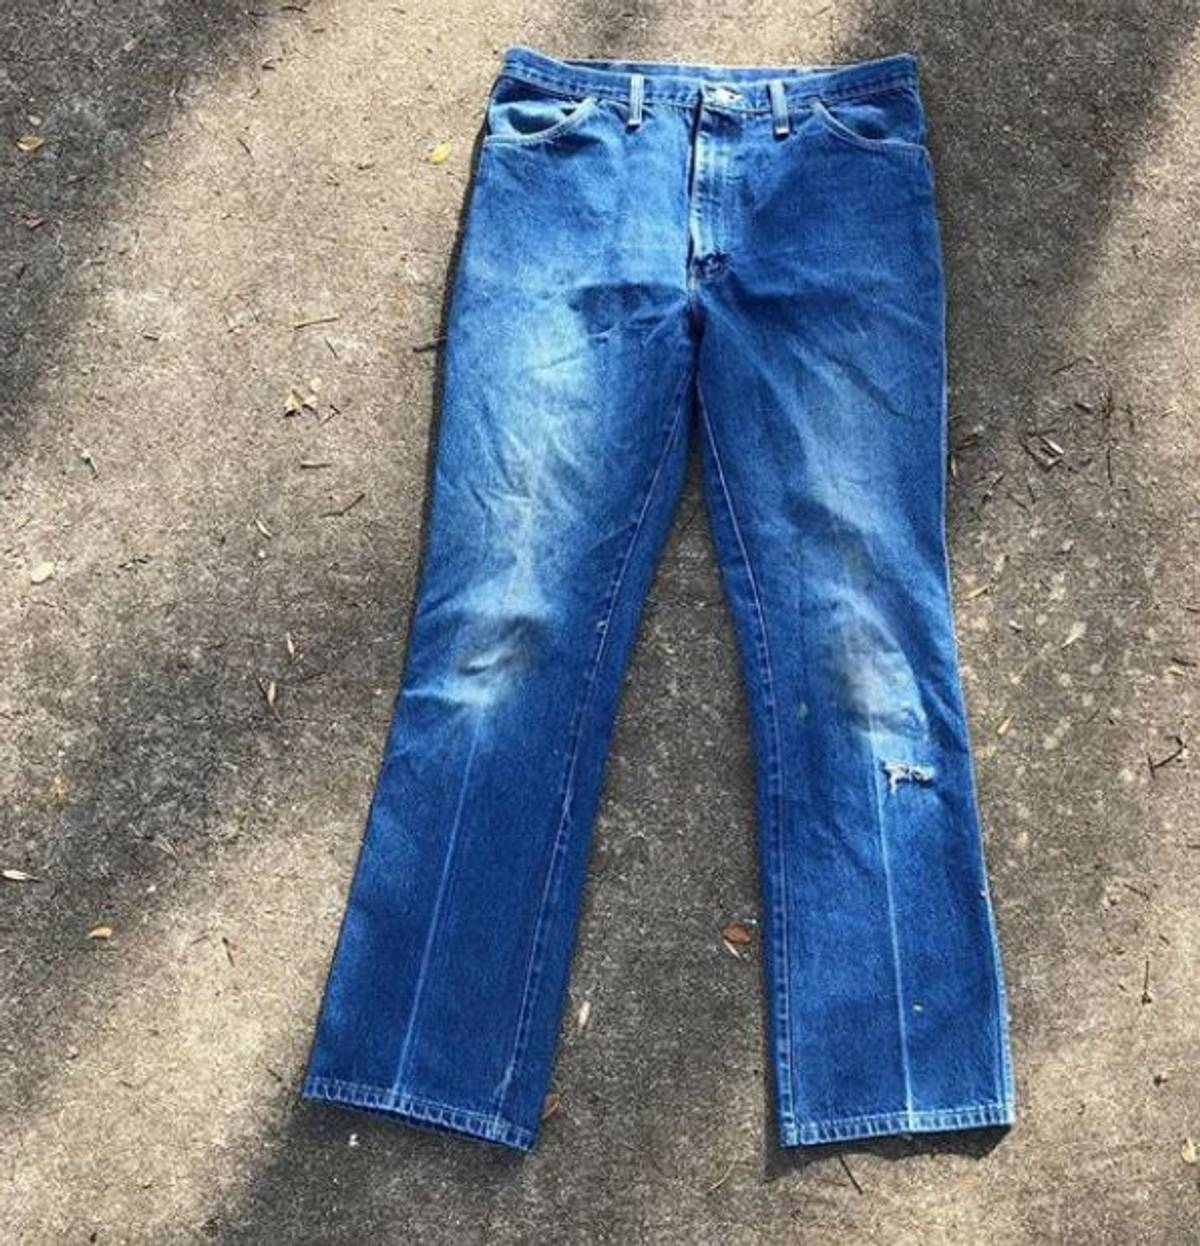 Wrangler 80s Vintage Distressed Men S Rustler Jeans Made In Usa Grailed Check out our new internet specials, and watch this space for updates to come! grailed